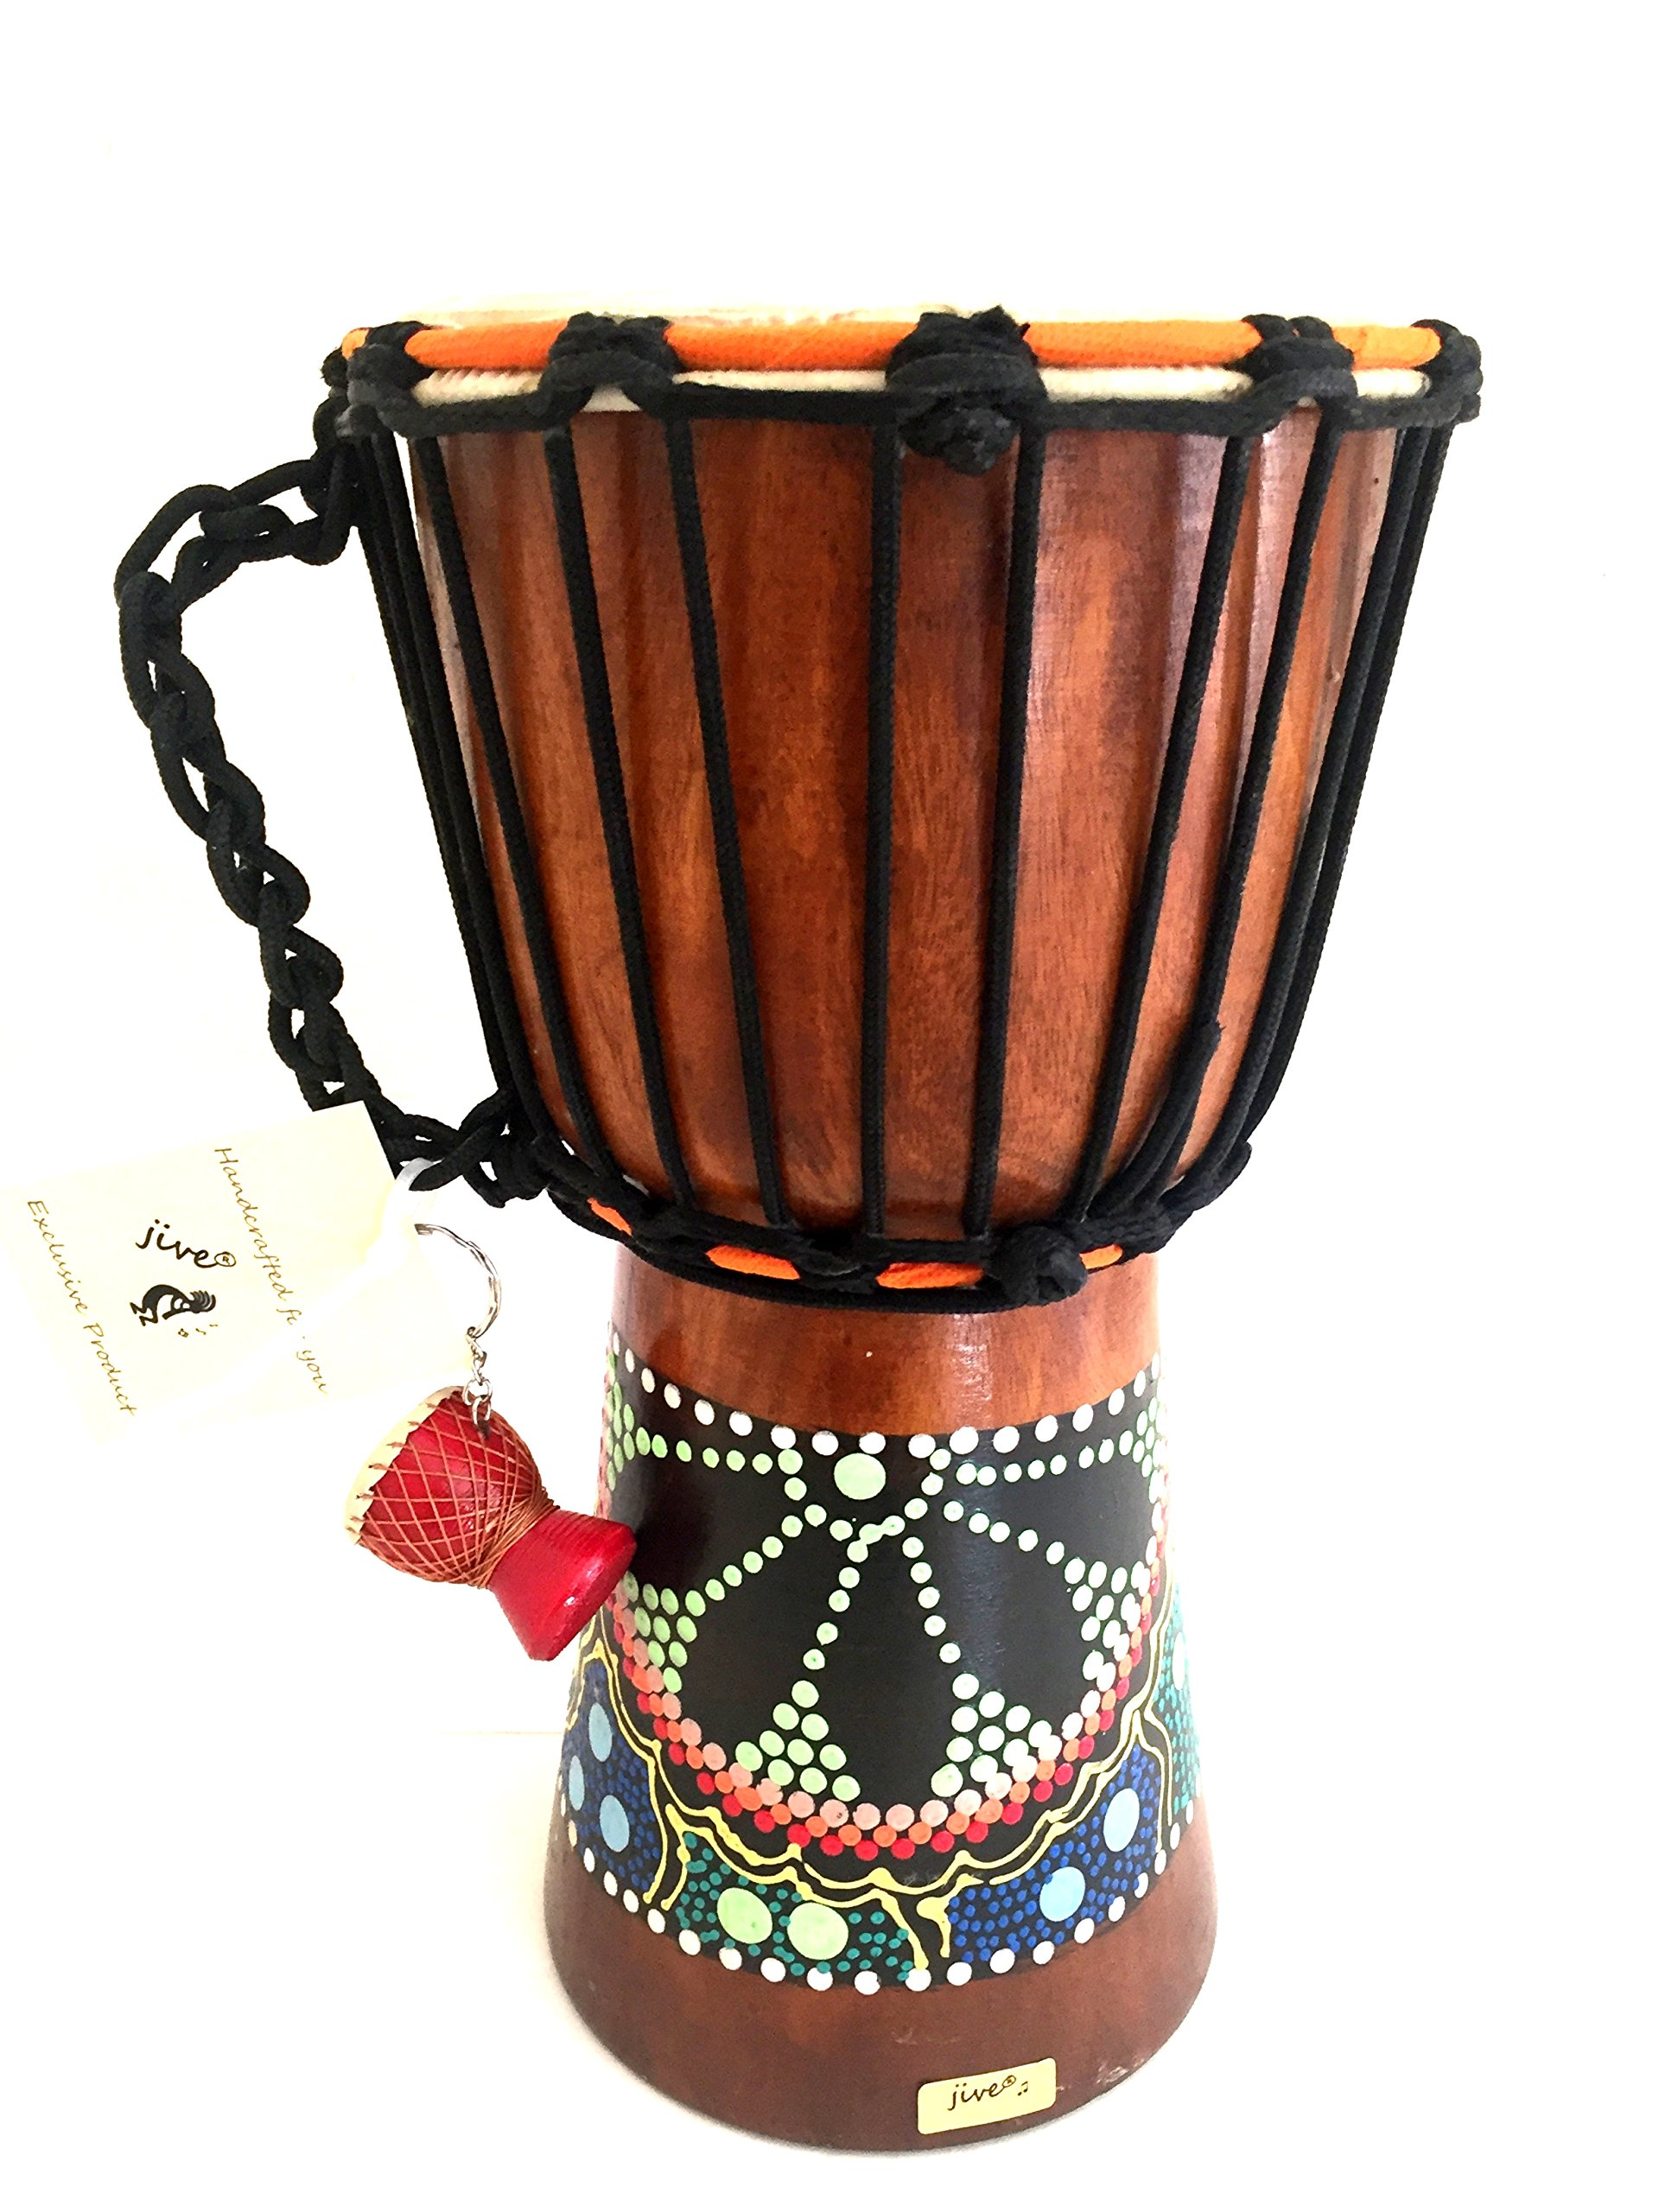 Djembe Drum Bongo Congo African Wood Drum - MED SIZE- 12'' High, JIVE (TM) BRAND, Professional Premium Quality With Heavy Base/Includes Drum Key Chain